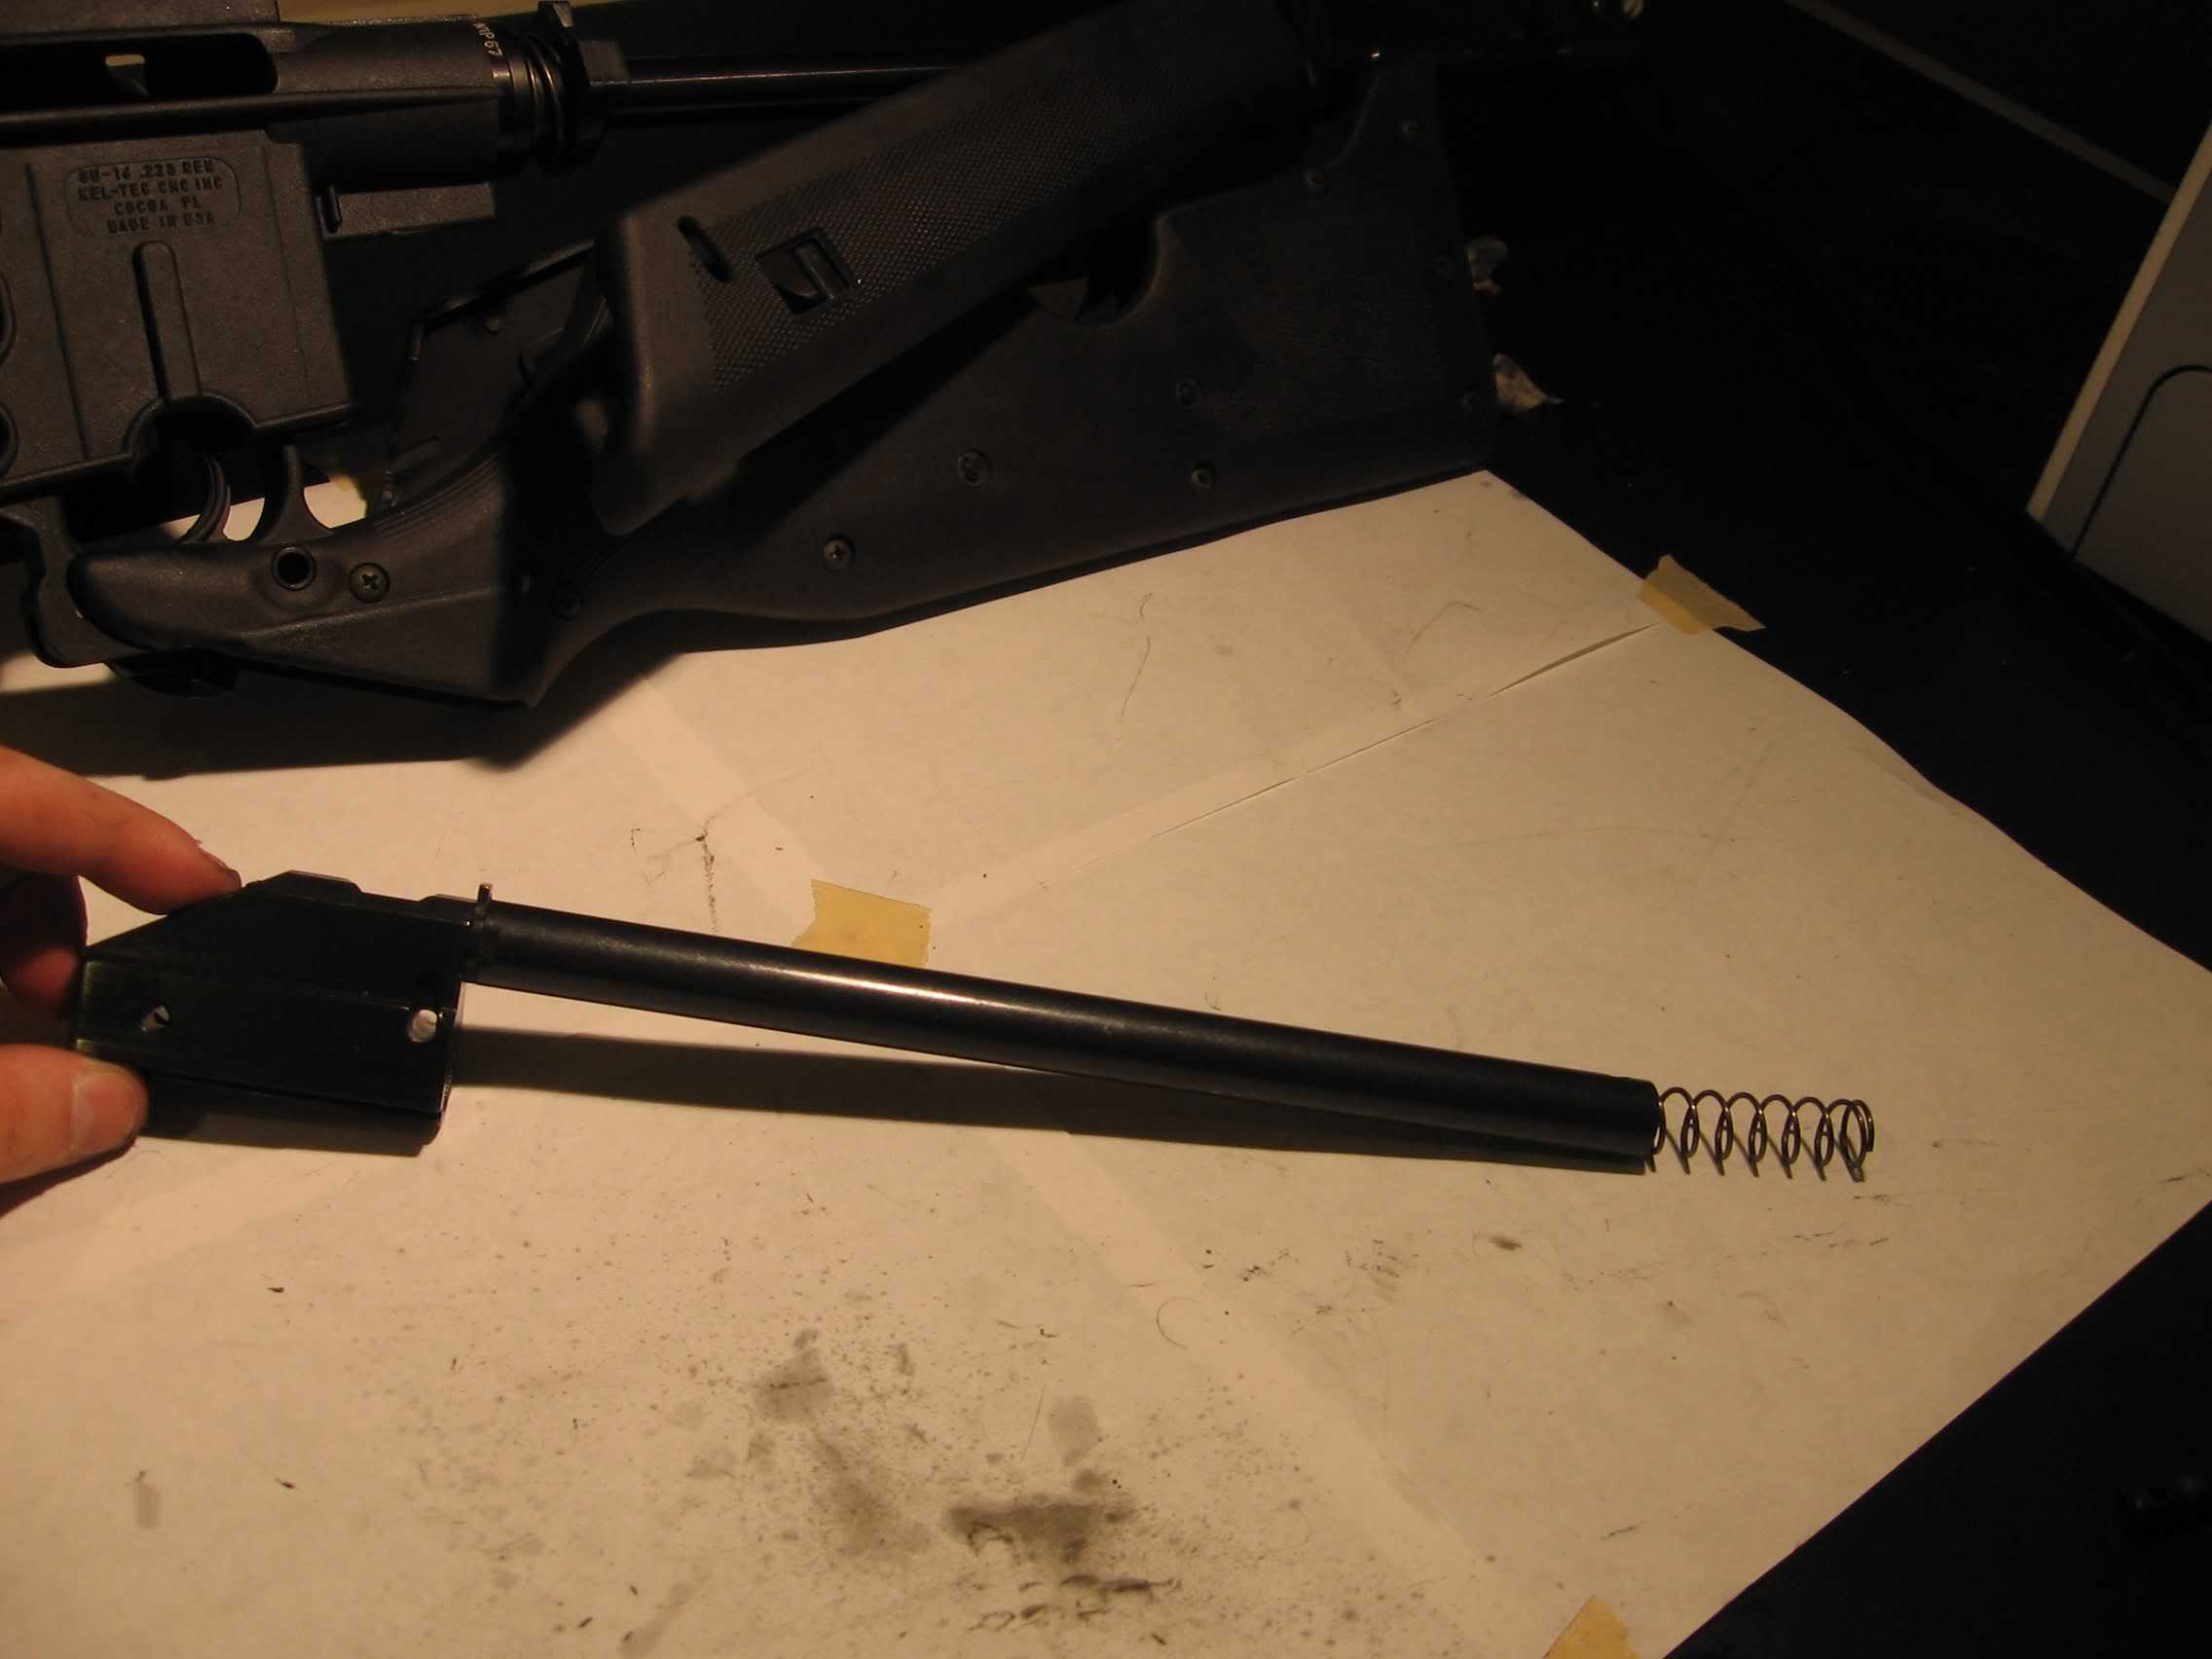 Disassembling, cleaning, and reassembling a Kel-Tec SU-16B rifle